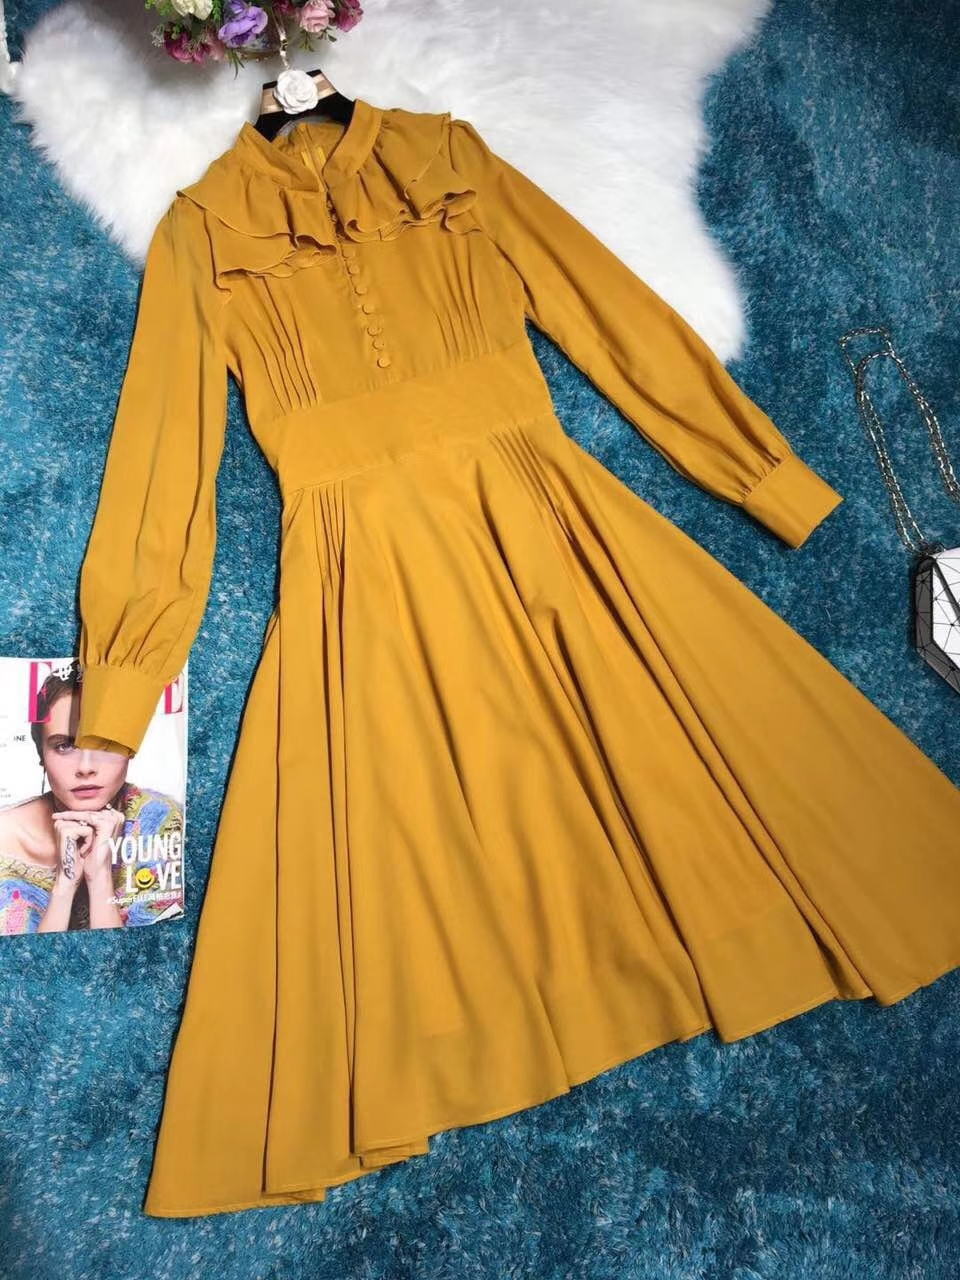 High Fashion Autumn Style Ruffles Stand Collar Design Formal Casual Yellow Dress 2018 Women Boutique Elegant Pleated Dress